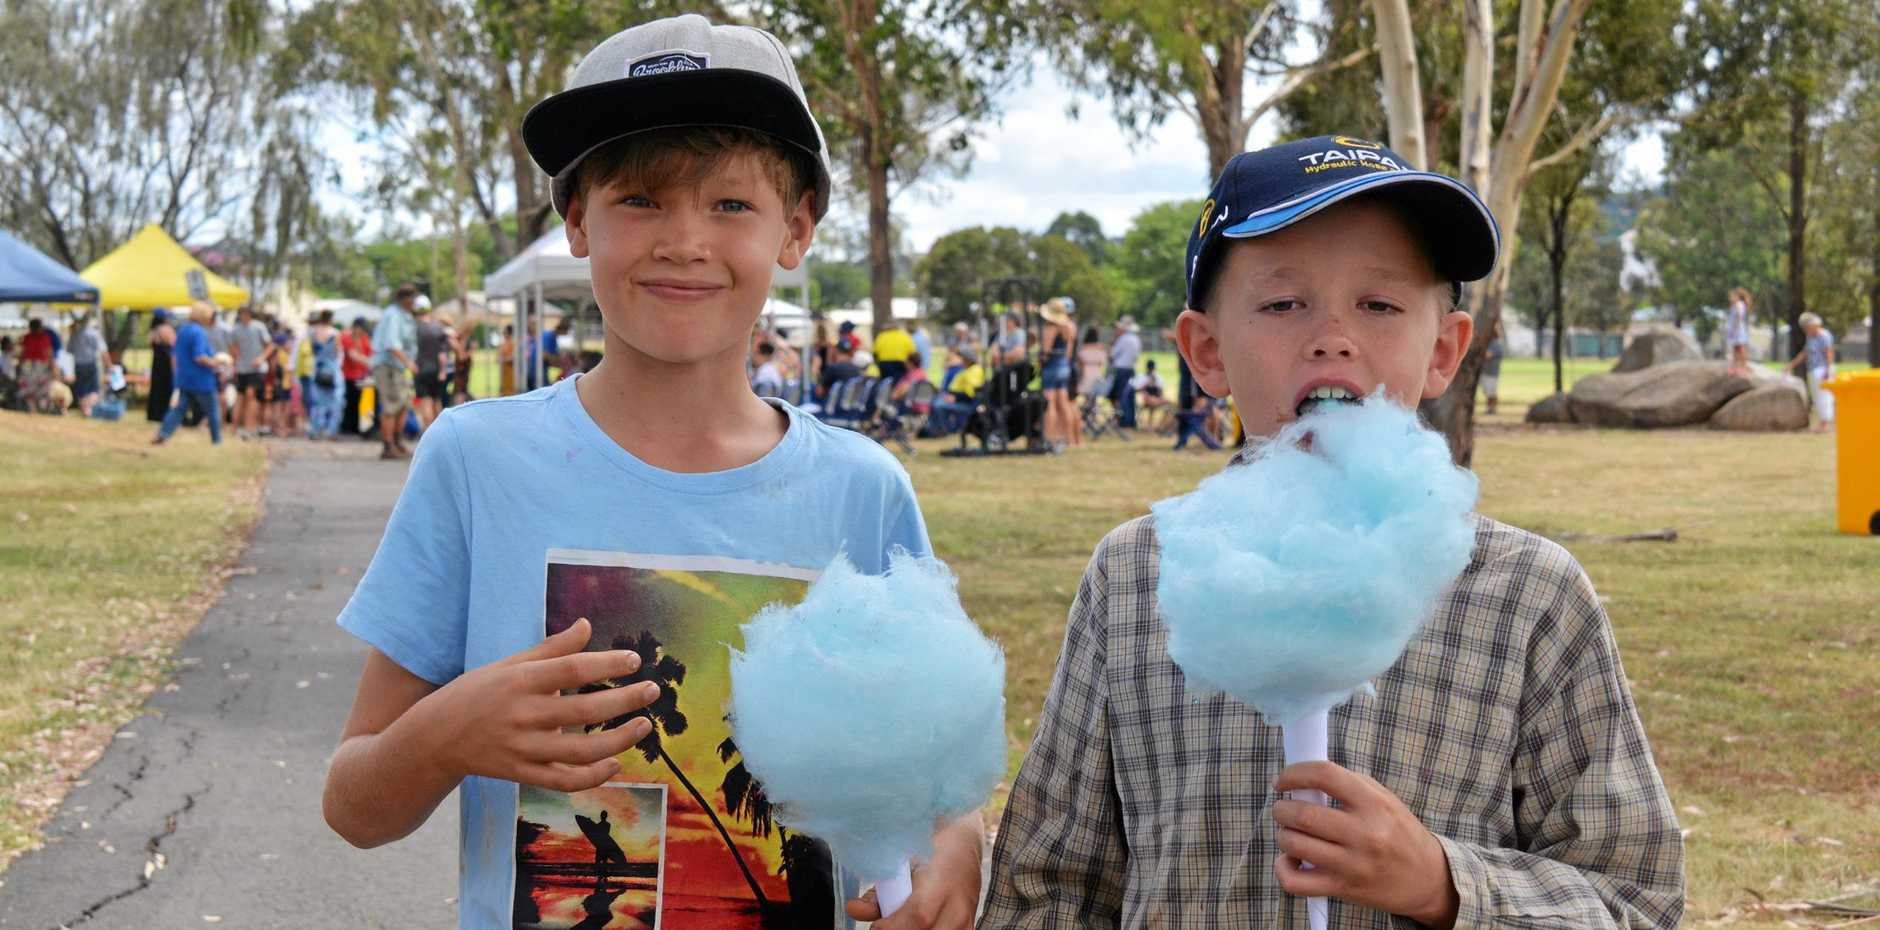 Stuart Reeves and Mitchell Prain try out the fairy floss at the 2019 Australia Day celebrations in Kingaroy on January 26.